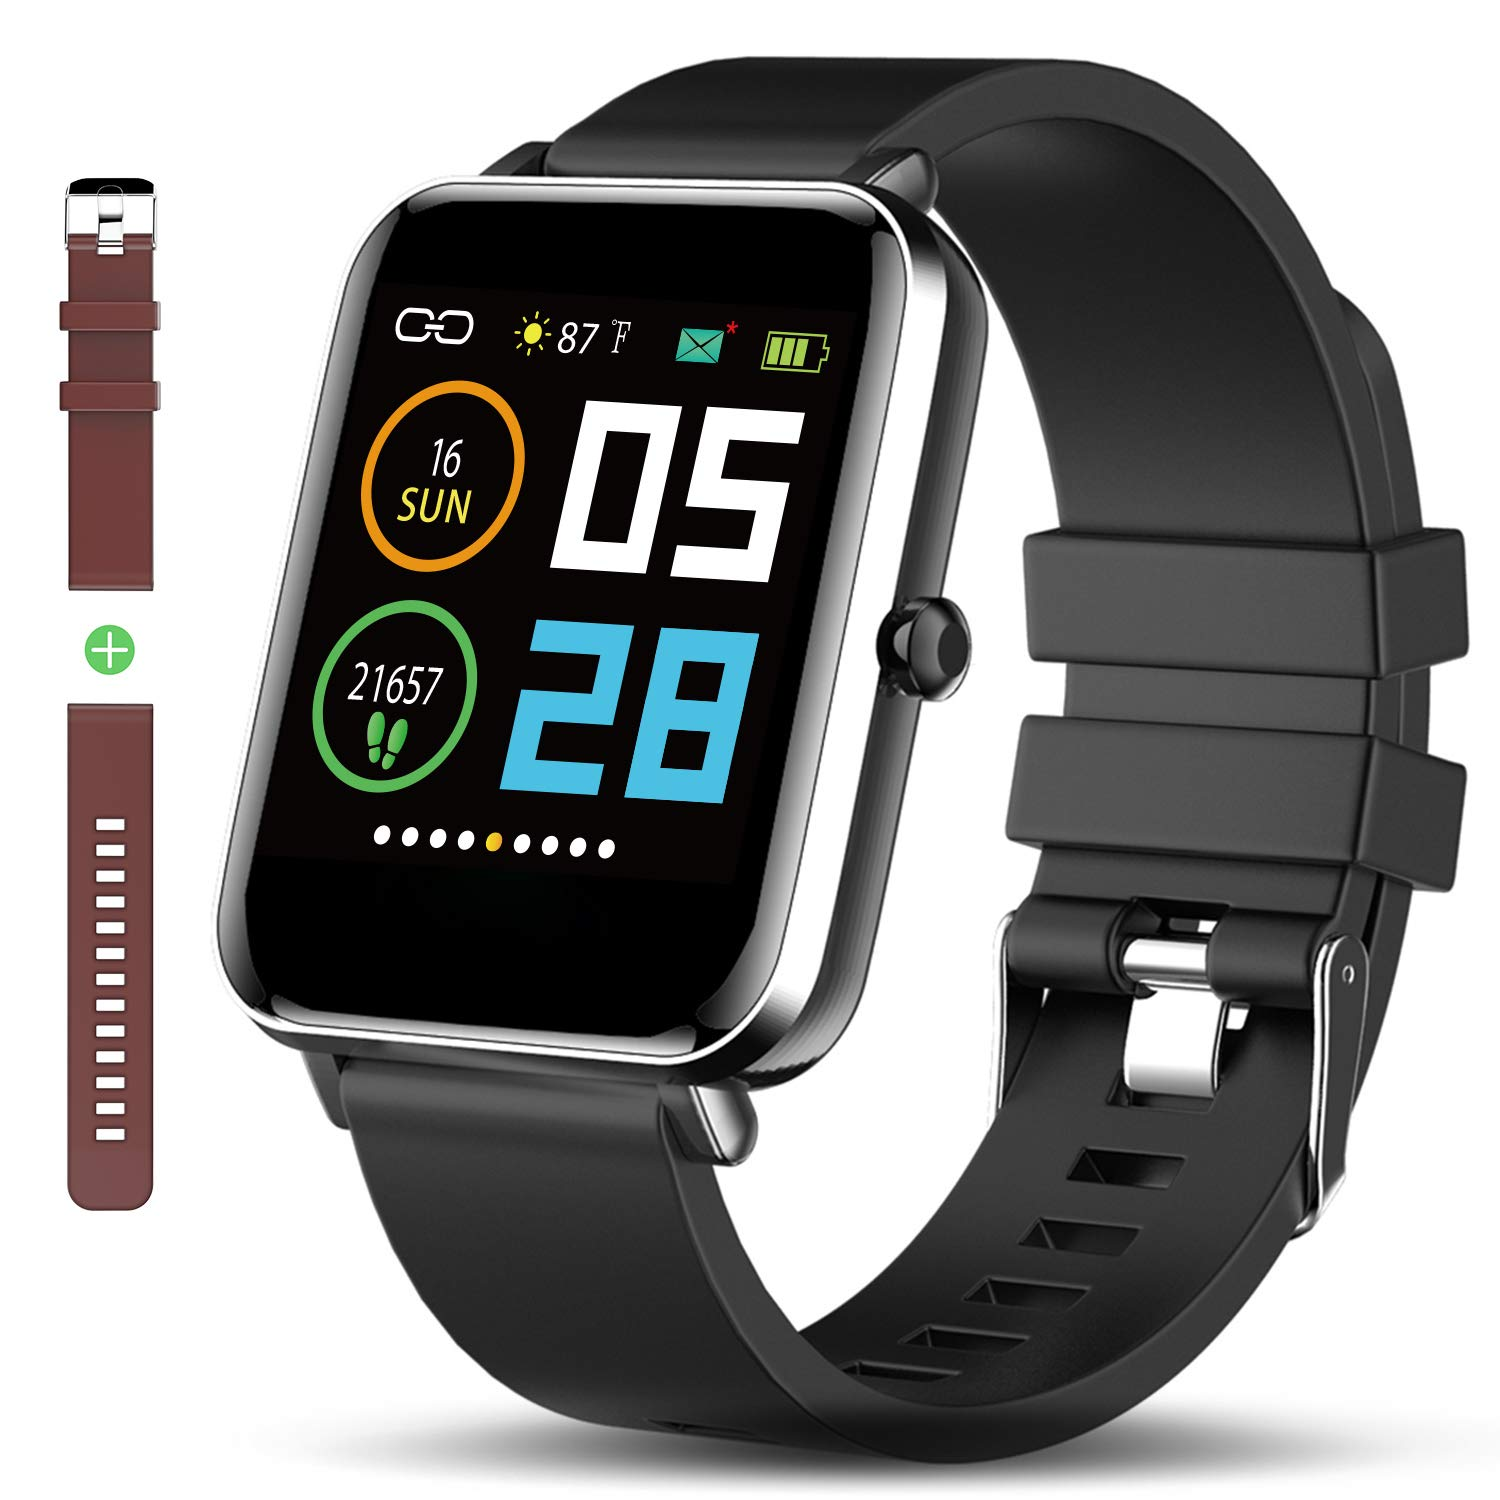 Bluetooth Smart Watch: All-Day Heart Rate Blood Pressure Activity Tracking Waterproof Full Touch Screen Step Counter Calorie Counter Pedometer Sleep Monitoring Ultra-Long Battery Life for iOS&Android by Zagzog